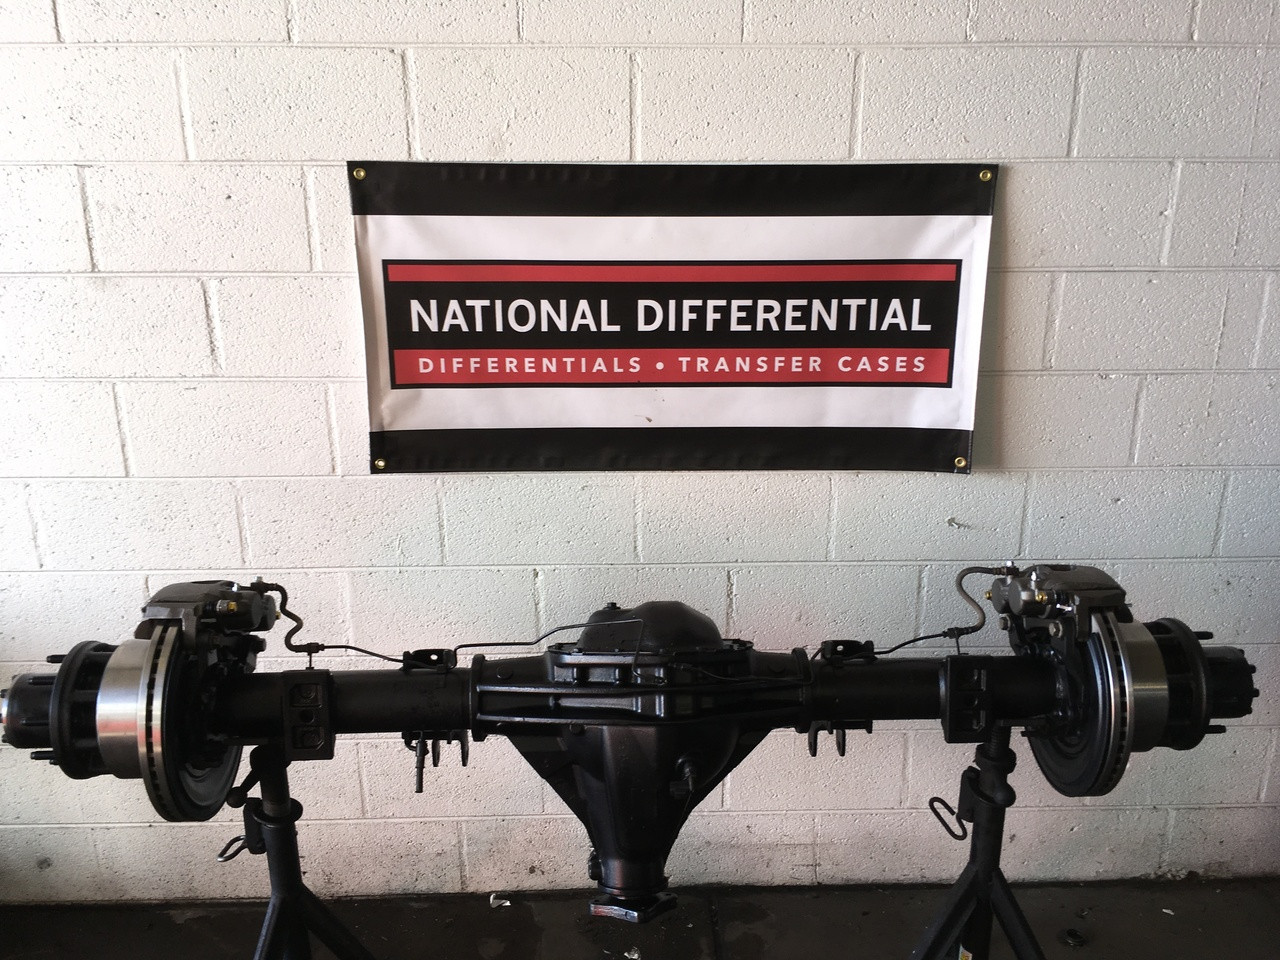 11.25 Rear Differential for 2003-2008 DRW Dodge 3500 Pickup with Dual Rear Wheels.  Available with 3.42, 3.73 or 4.10 gear ratios and limited slip.  Does not include brakes as shown in photo.